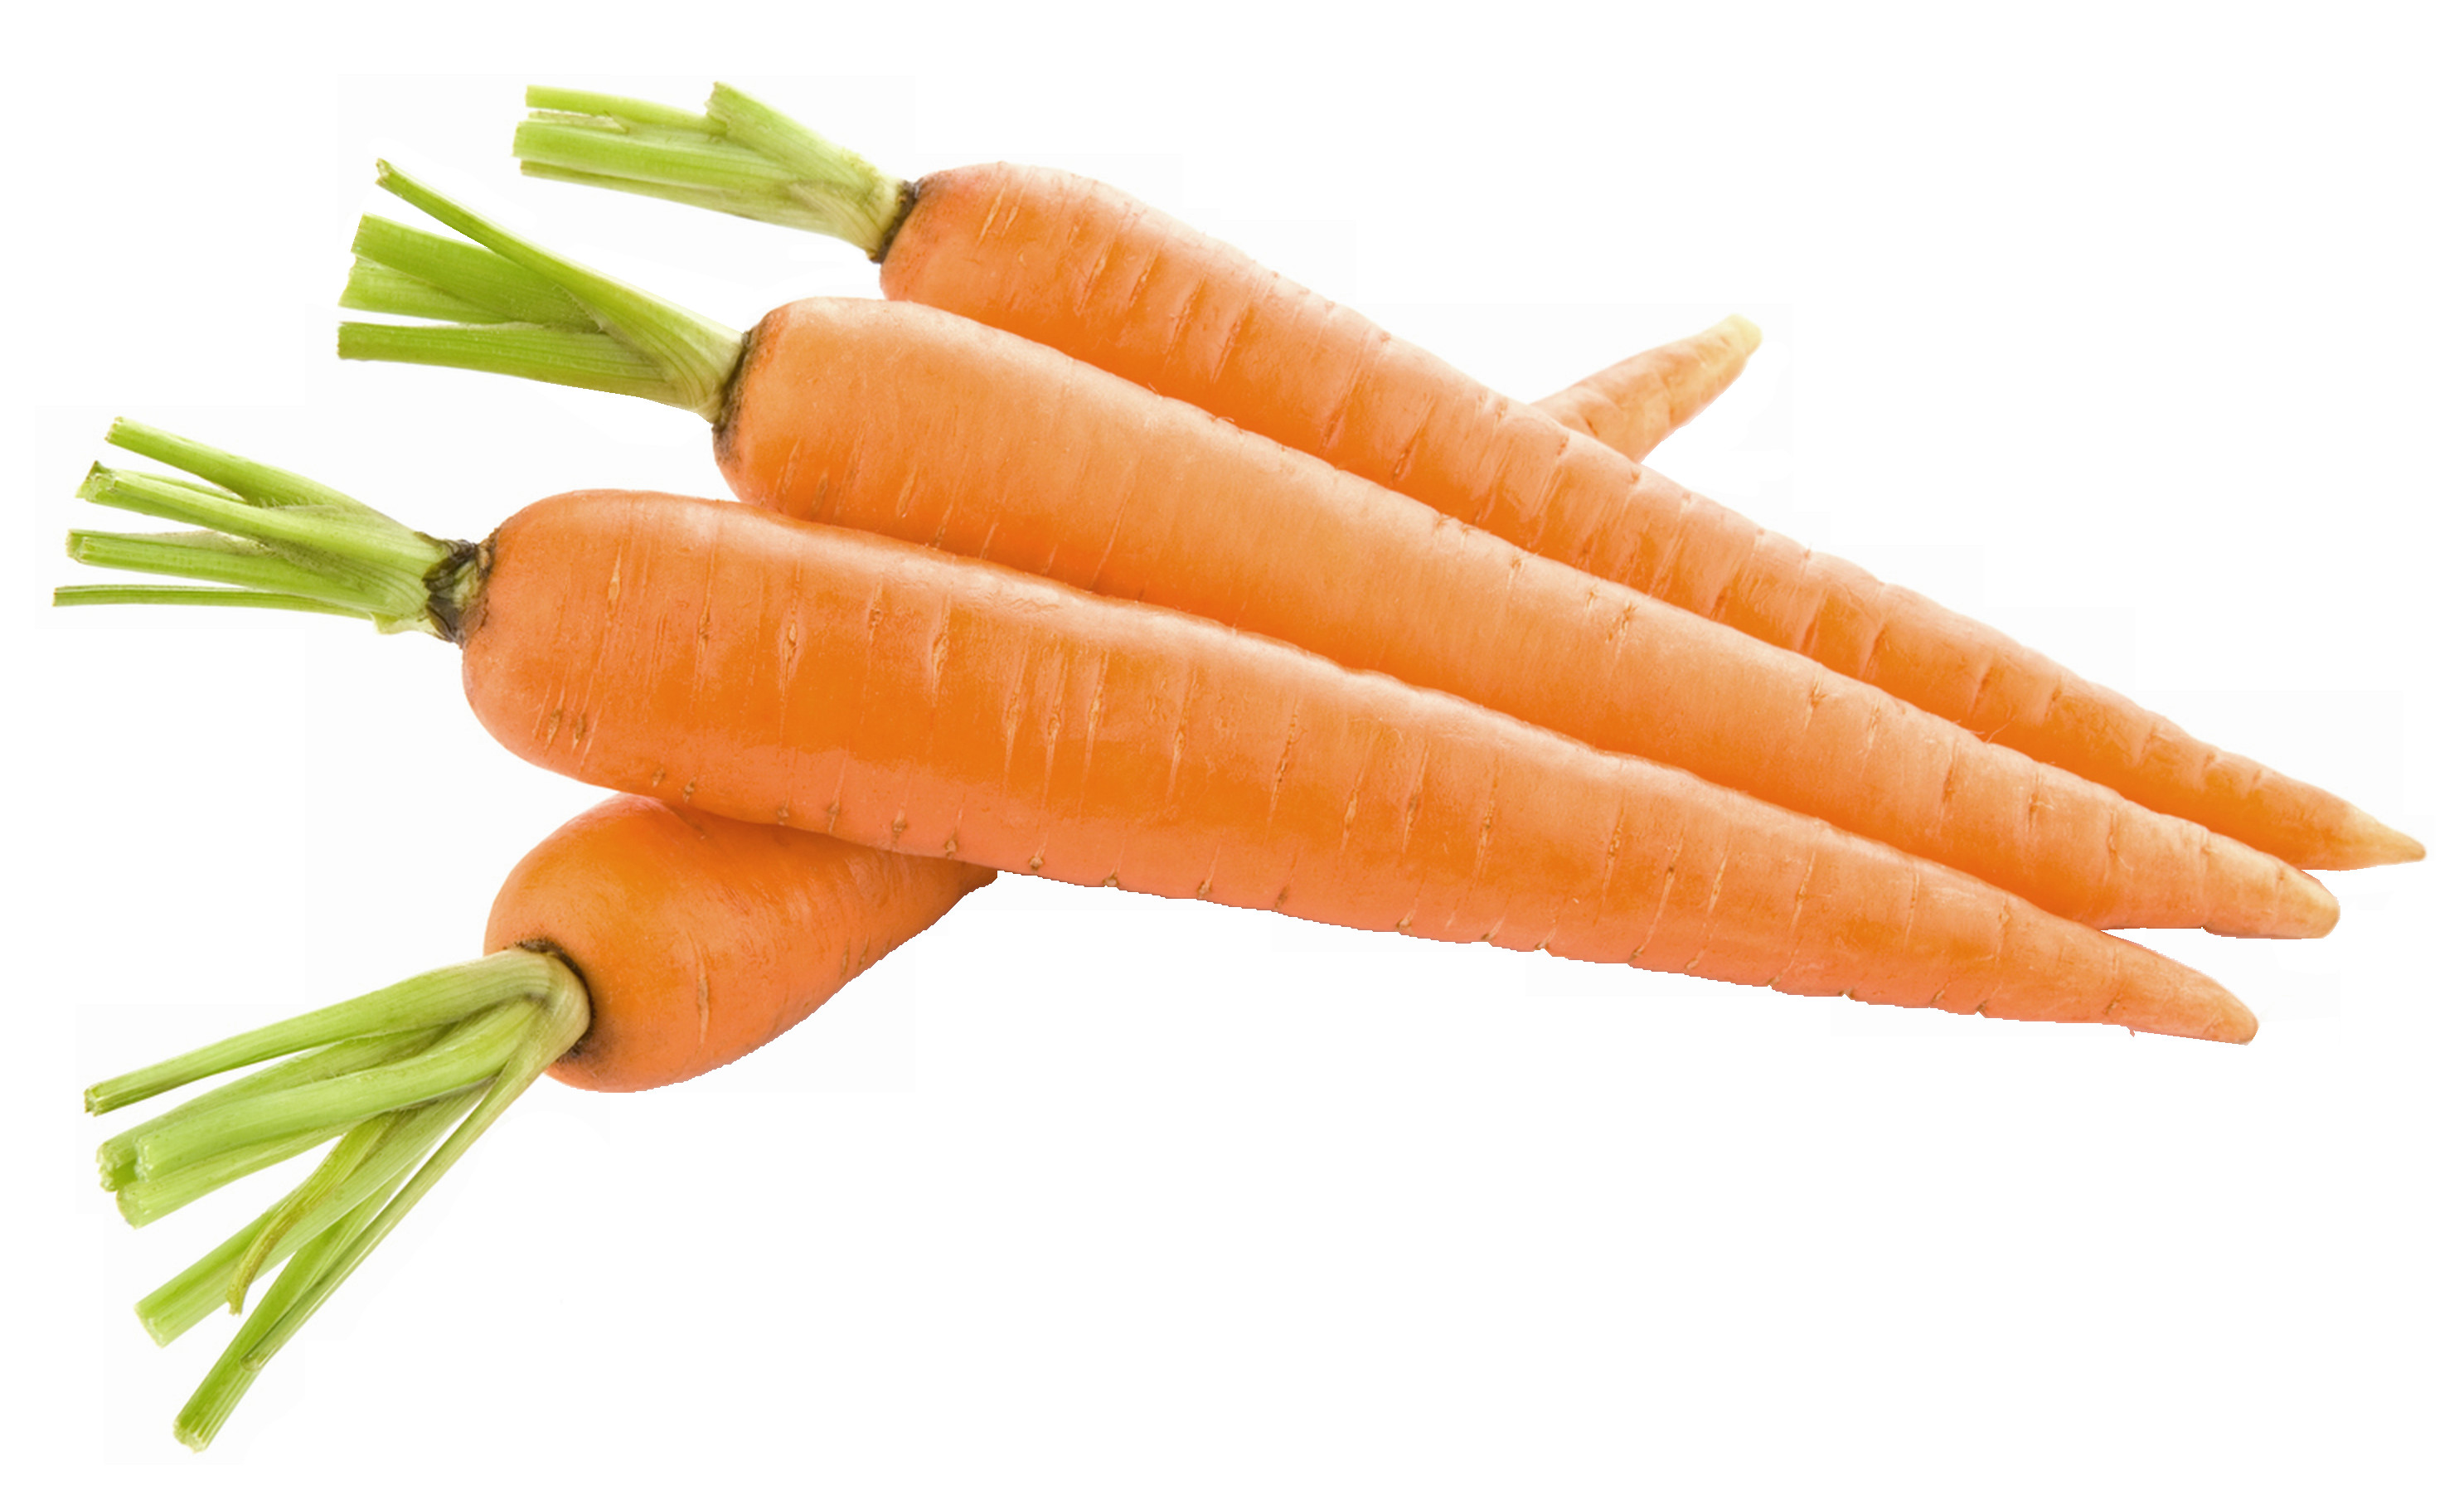 Carrot Fruit Or Vegetable  Eight Healthy Foods You Should Eat Every Day